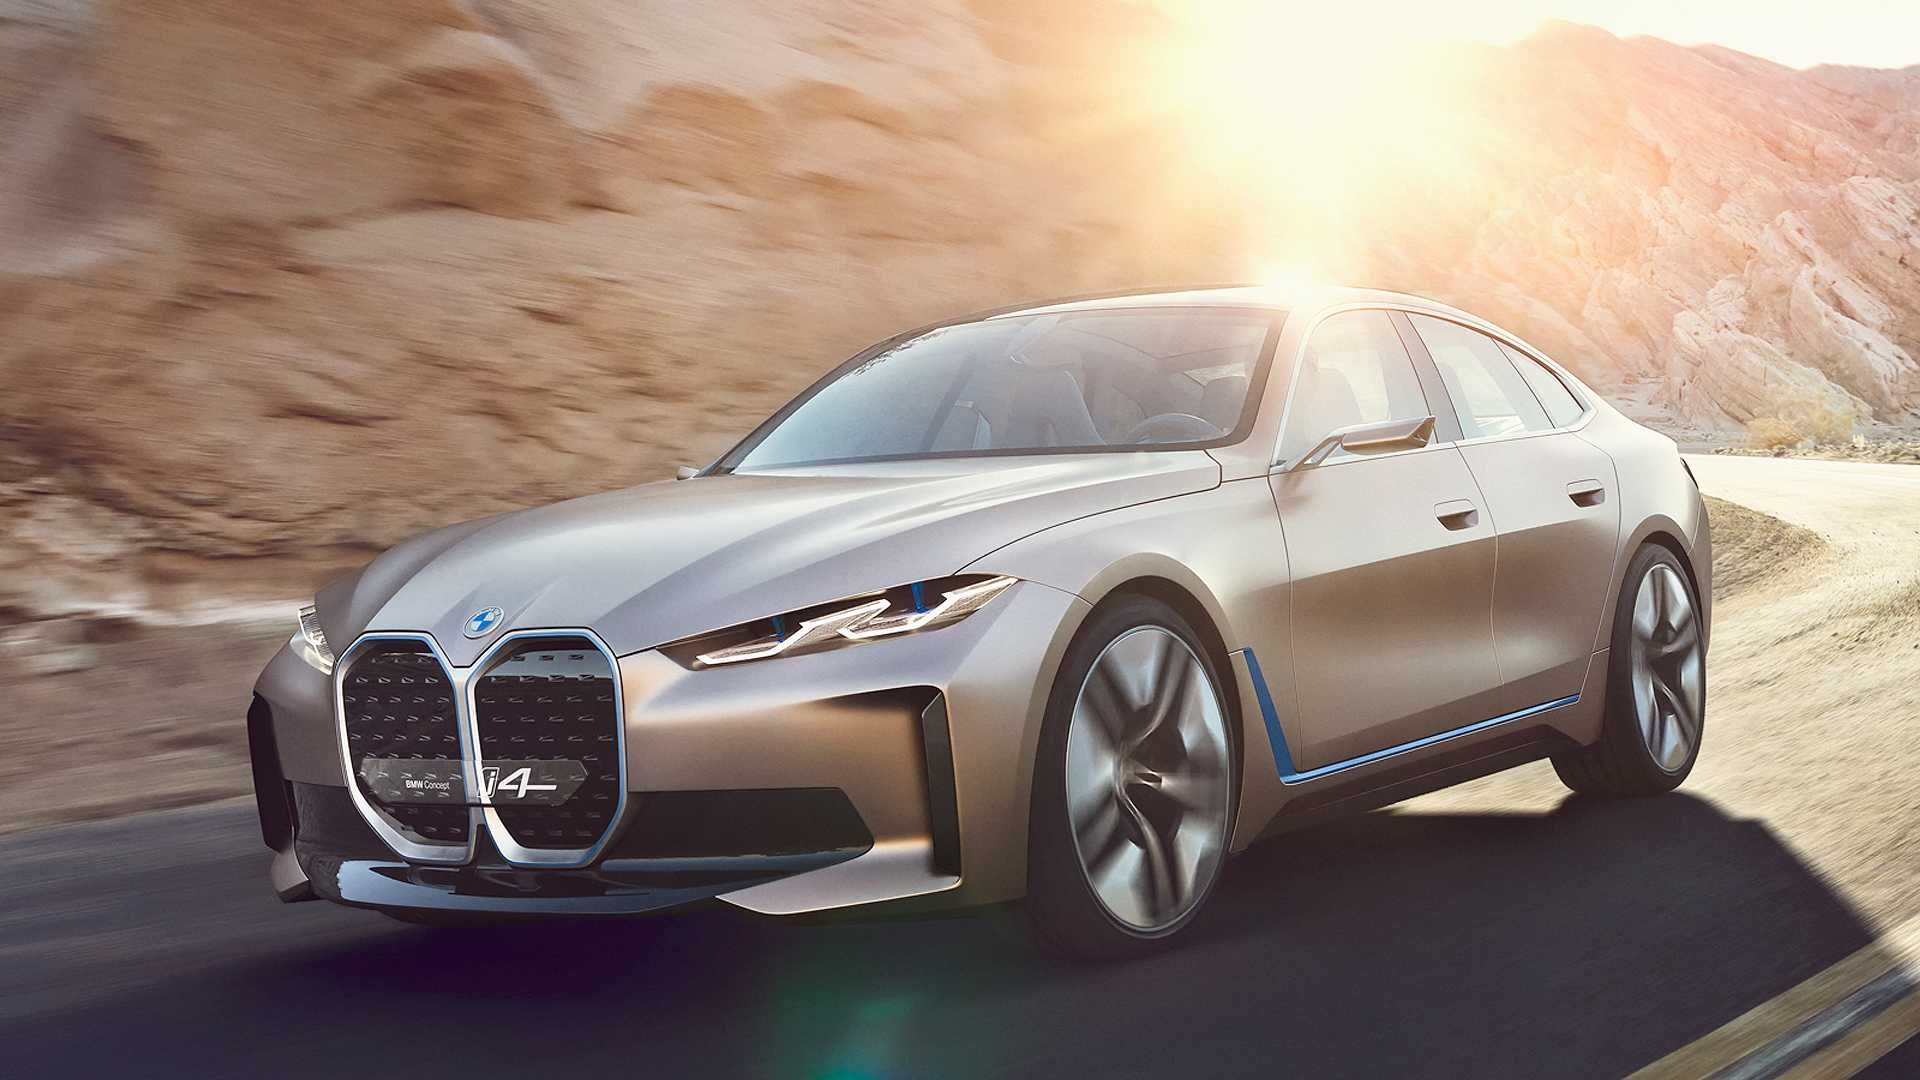 Bmw I4 Concept Revealed With 530 Hp 395 Kw And 600km Range In 2020 Bmw Concept Bmw Concept Car Bmw